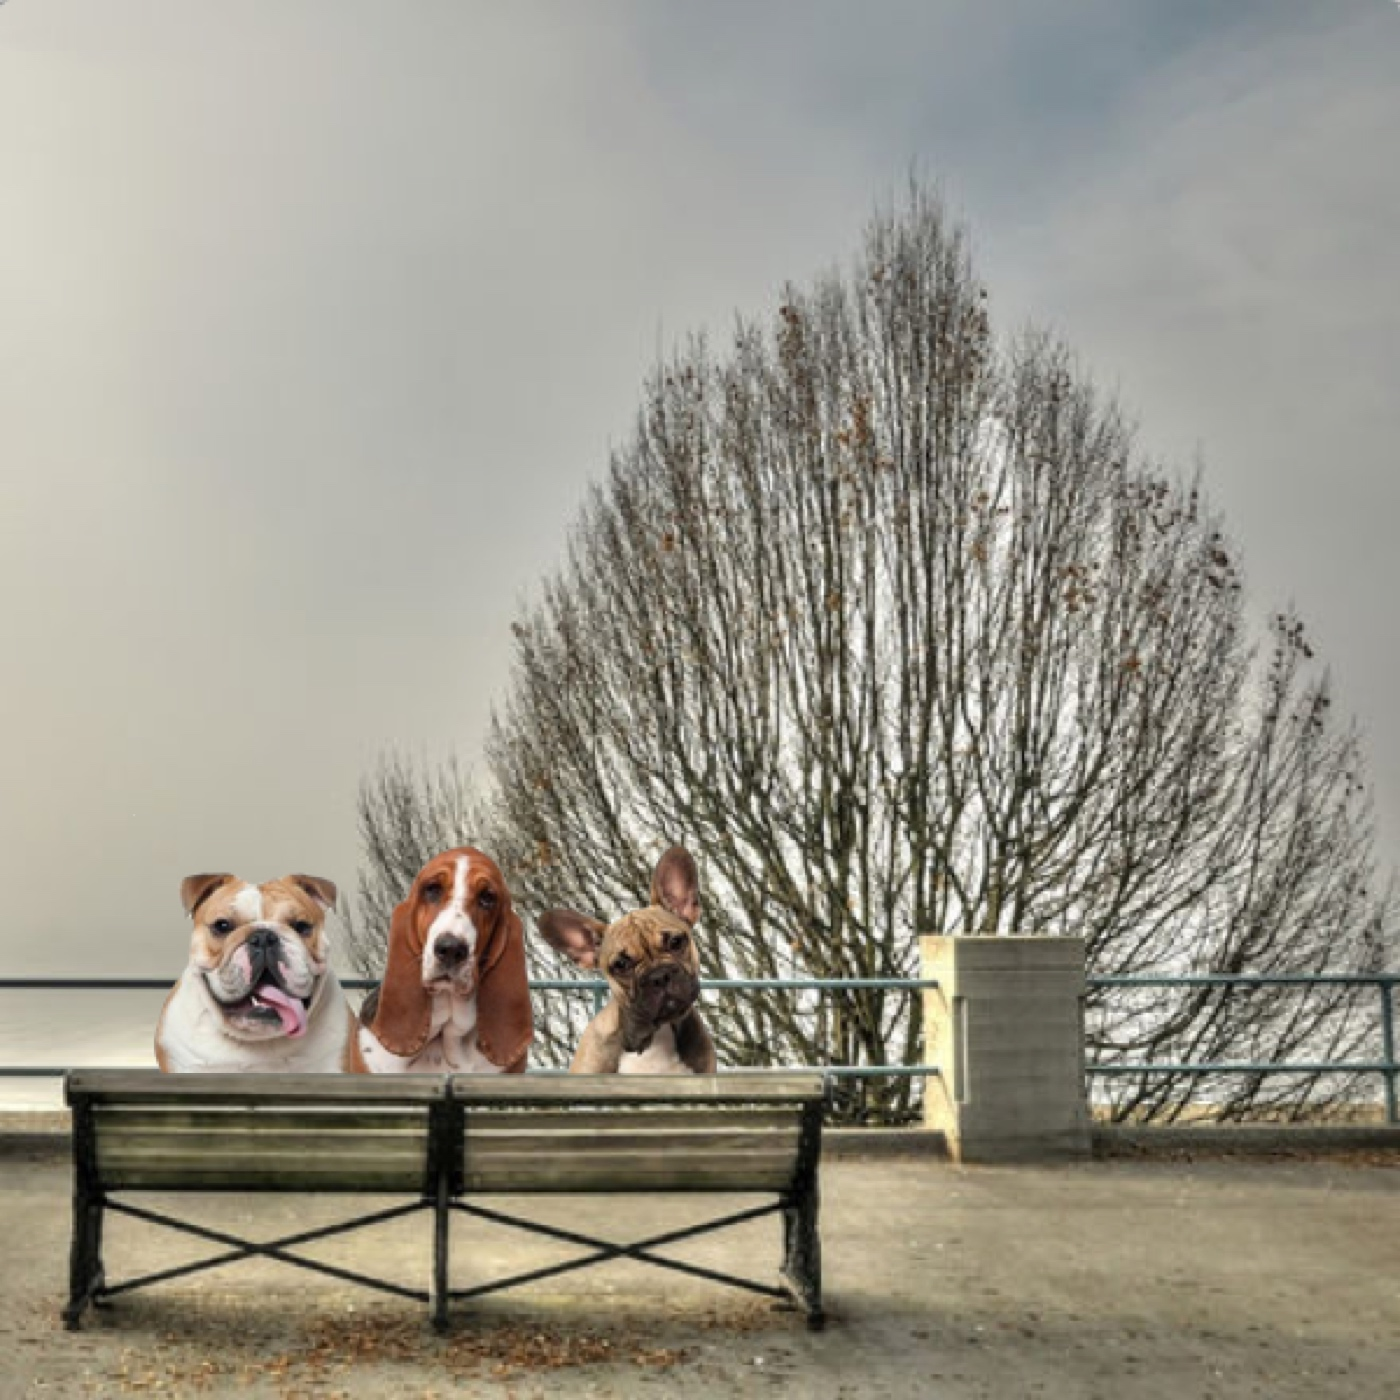 Shed Dogs of Vancouver